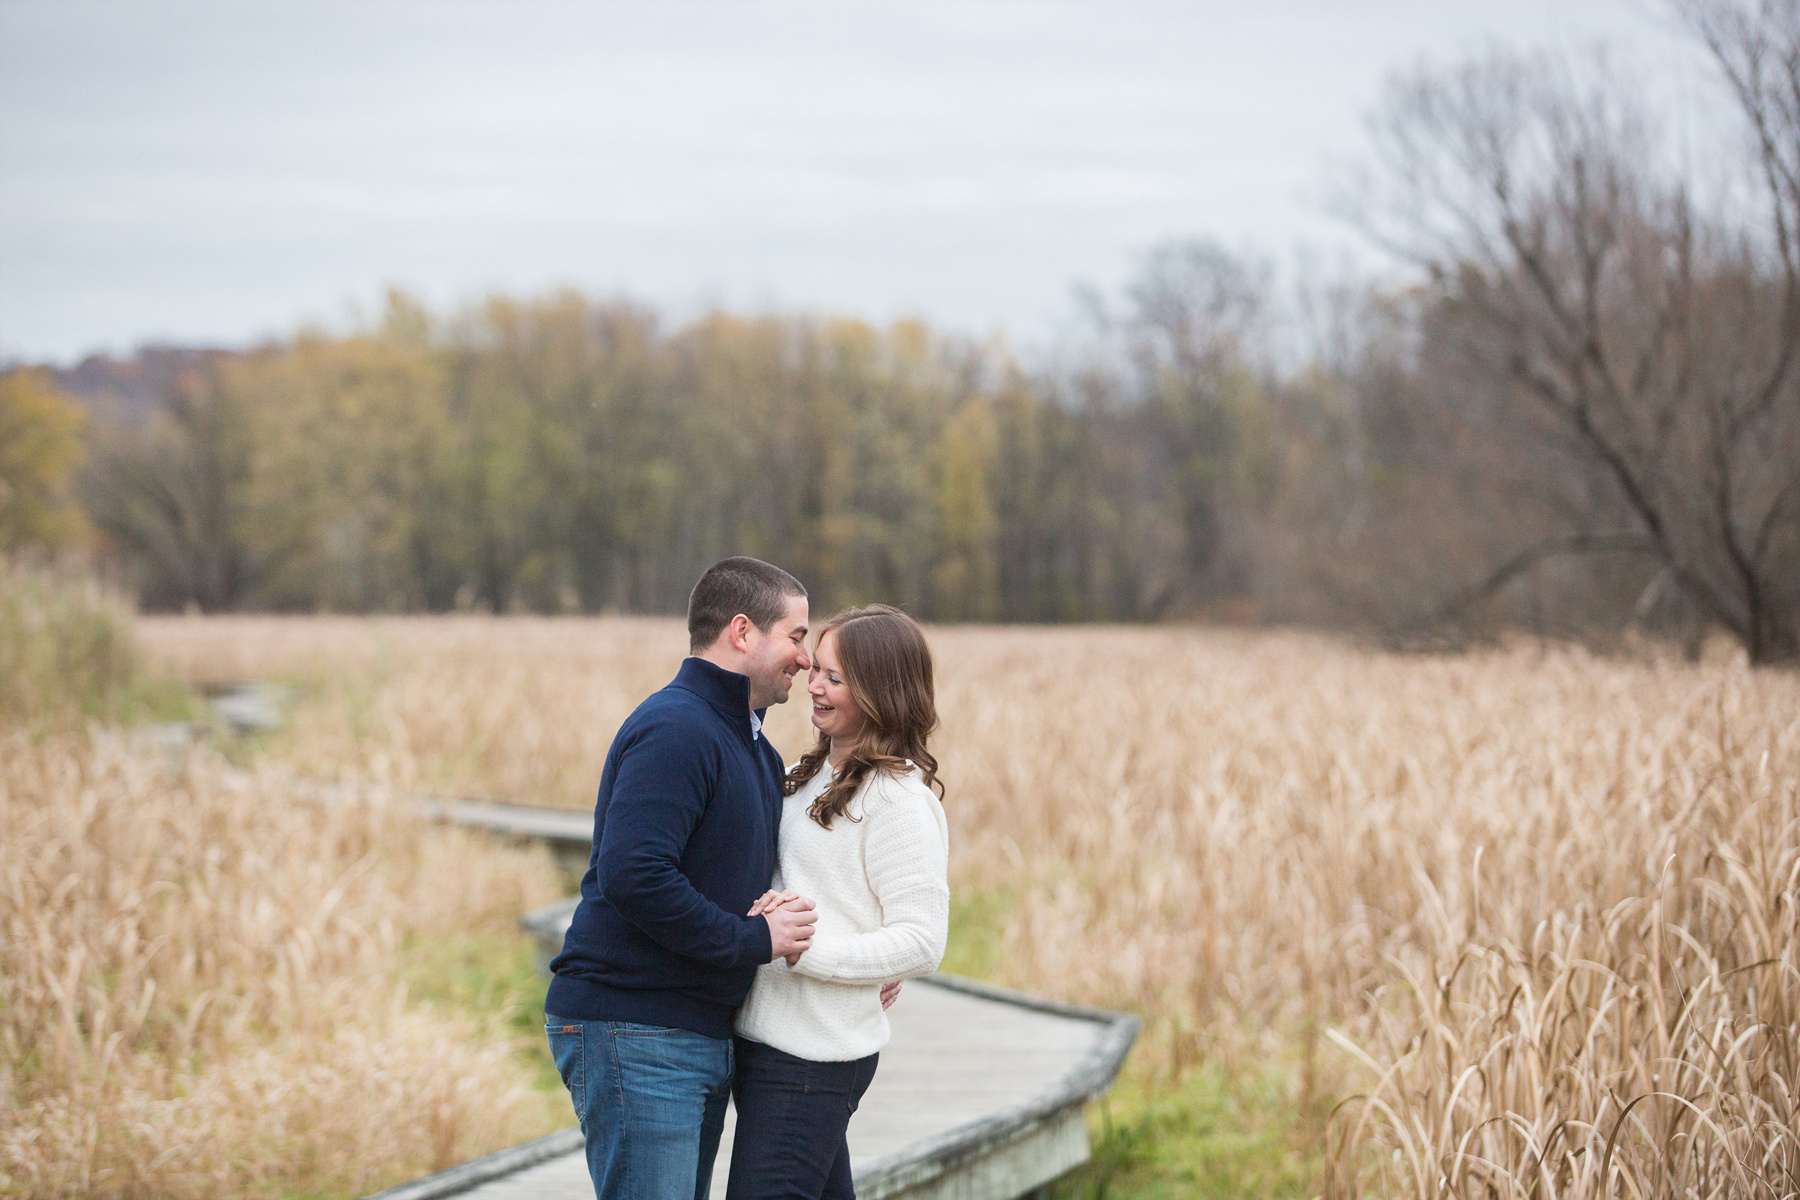 Appalachian Trail Boardwalk Engagement Photos